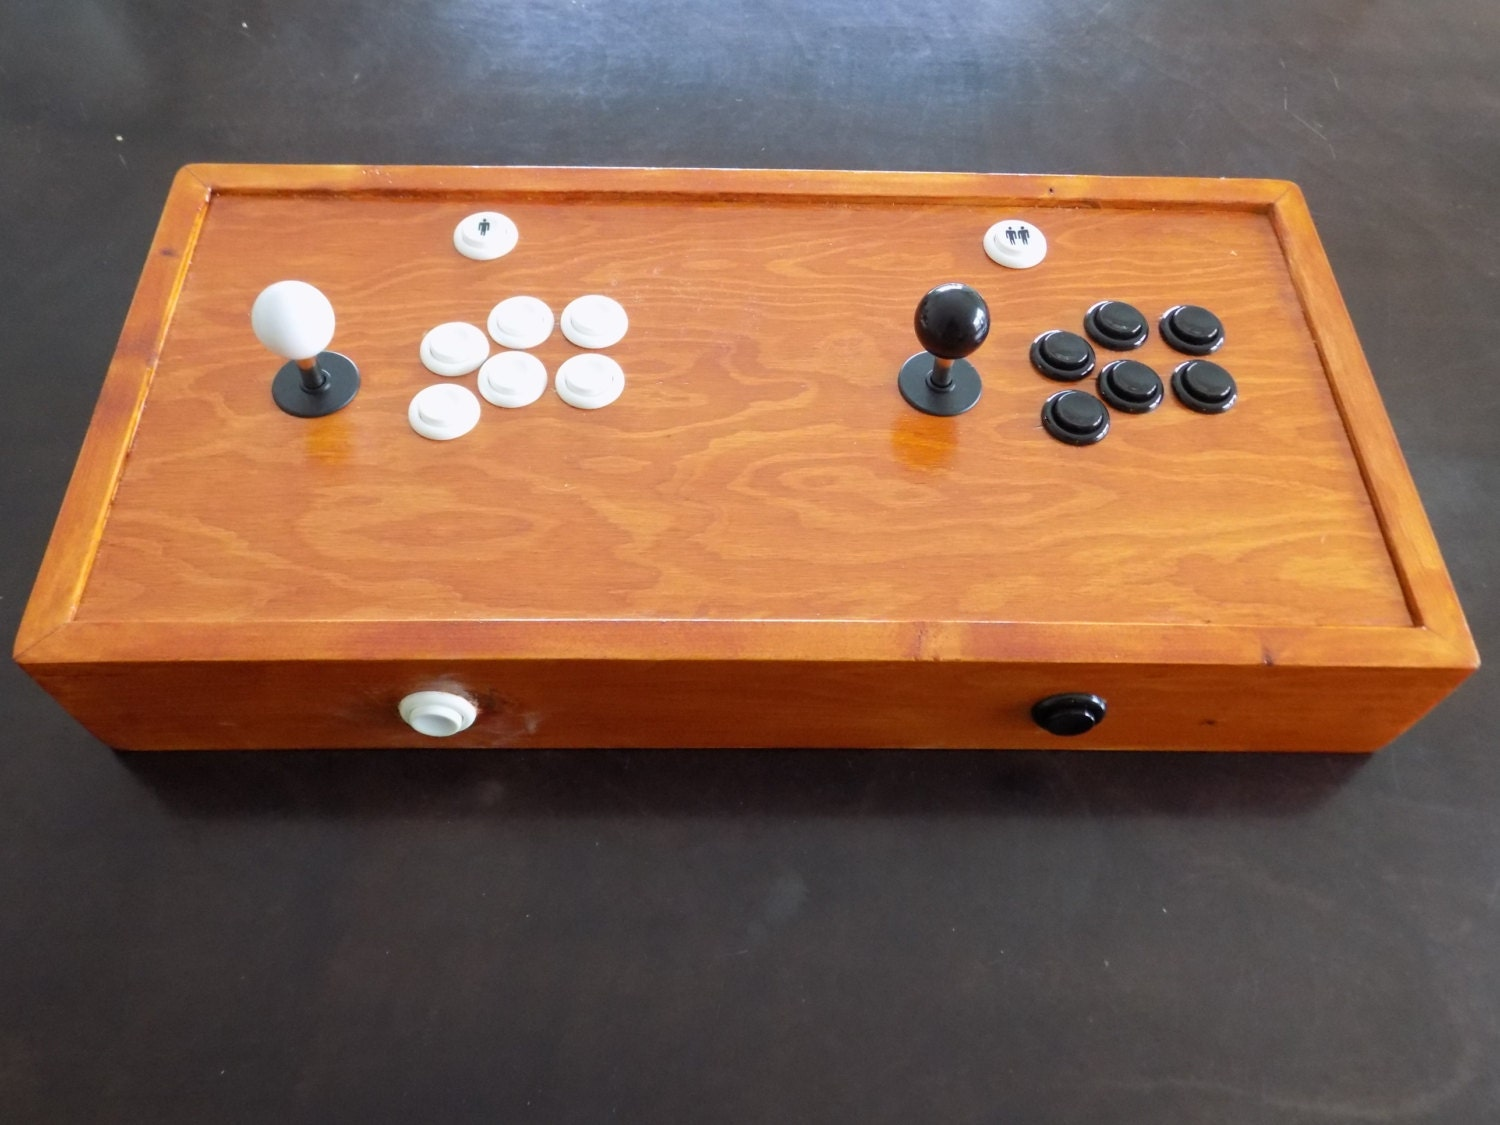 Custom Wood Retro Arcade 2 player controller with Raspberry PI